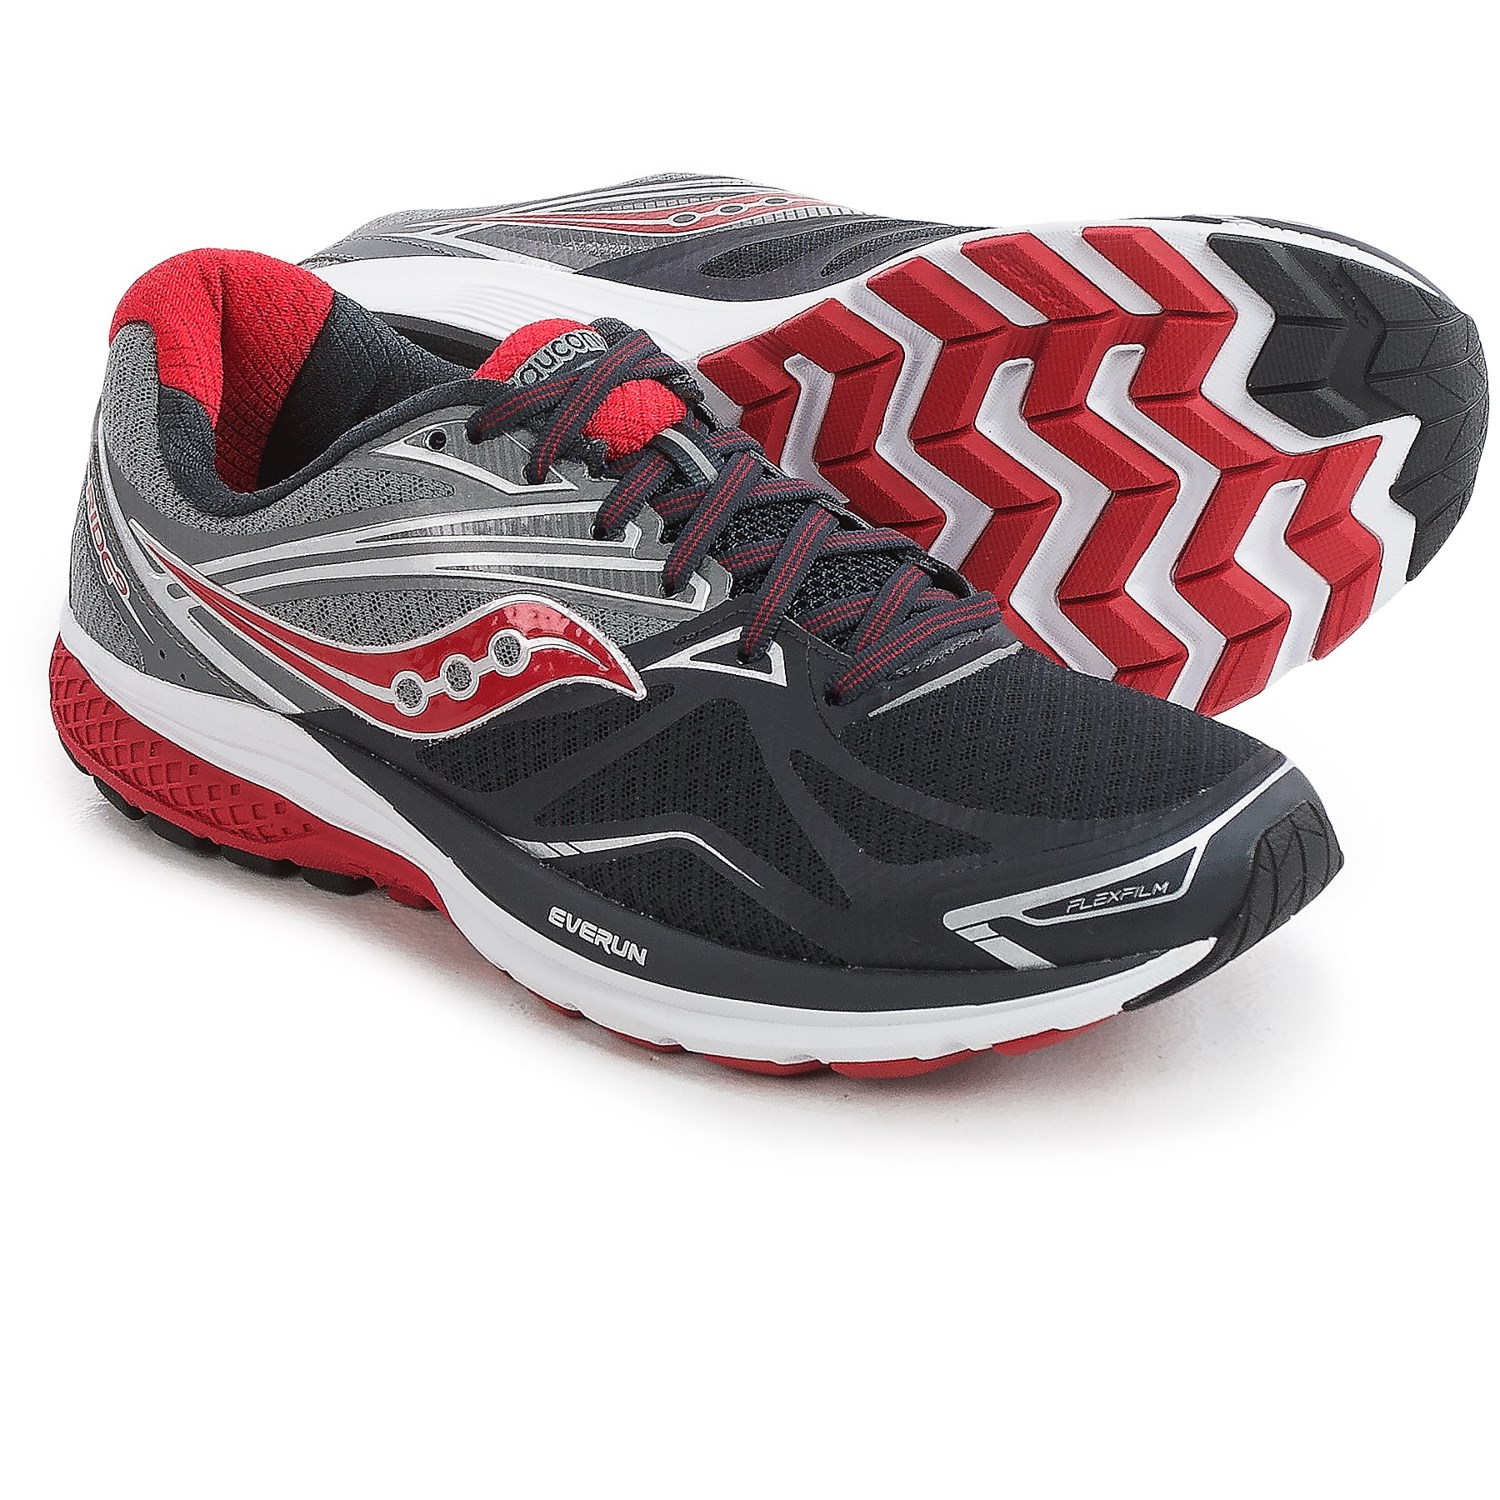 Saucony Guide  Running Shoes Review